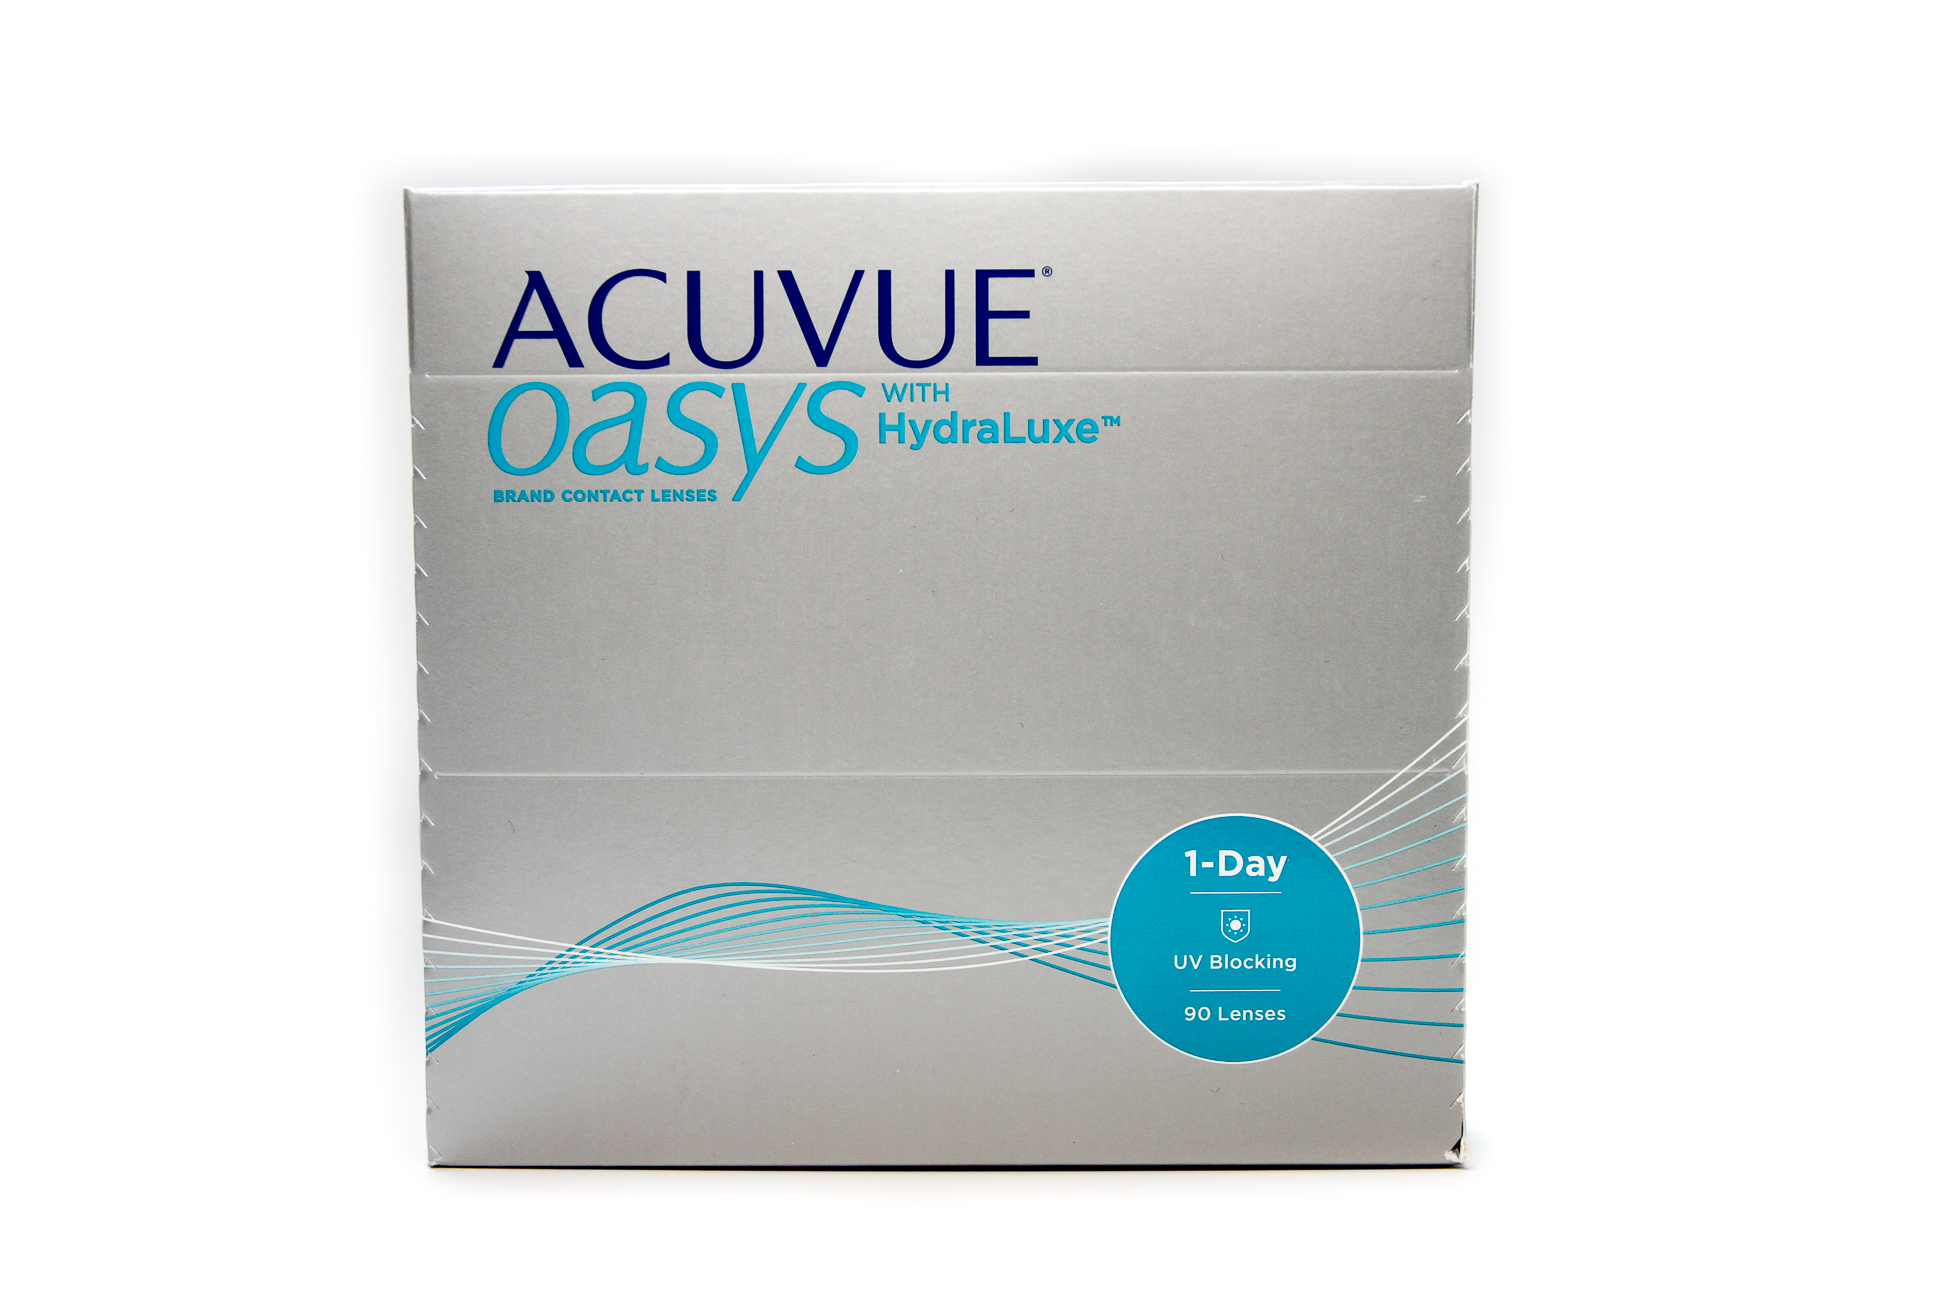 Acuvue Oasys Contacts >> Acuvue Oasys 1-Day with Hydraluxe – 90 pack | LensDirect